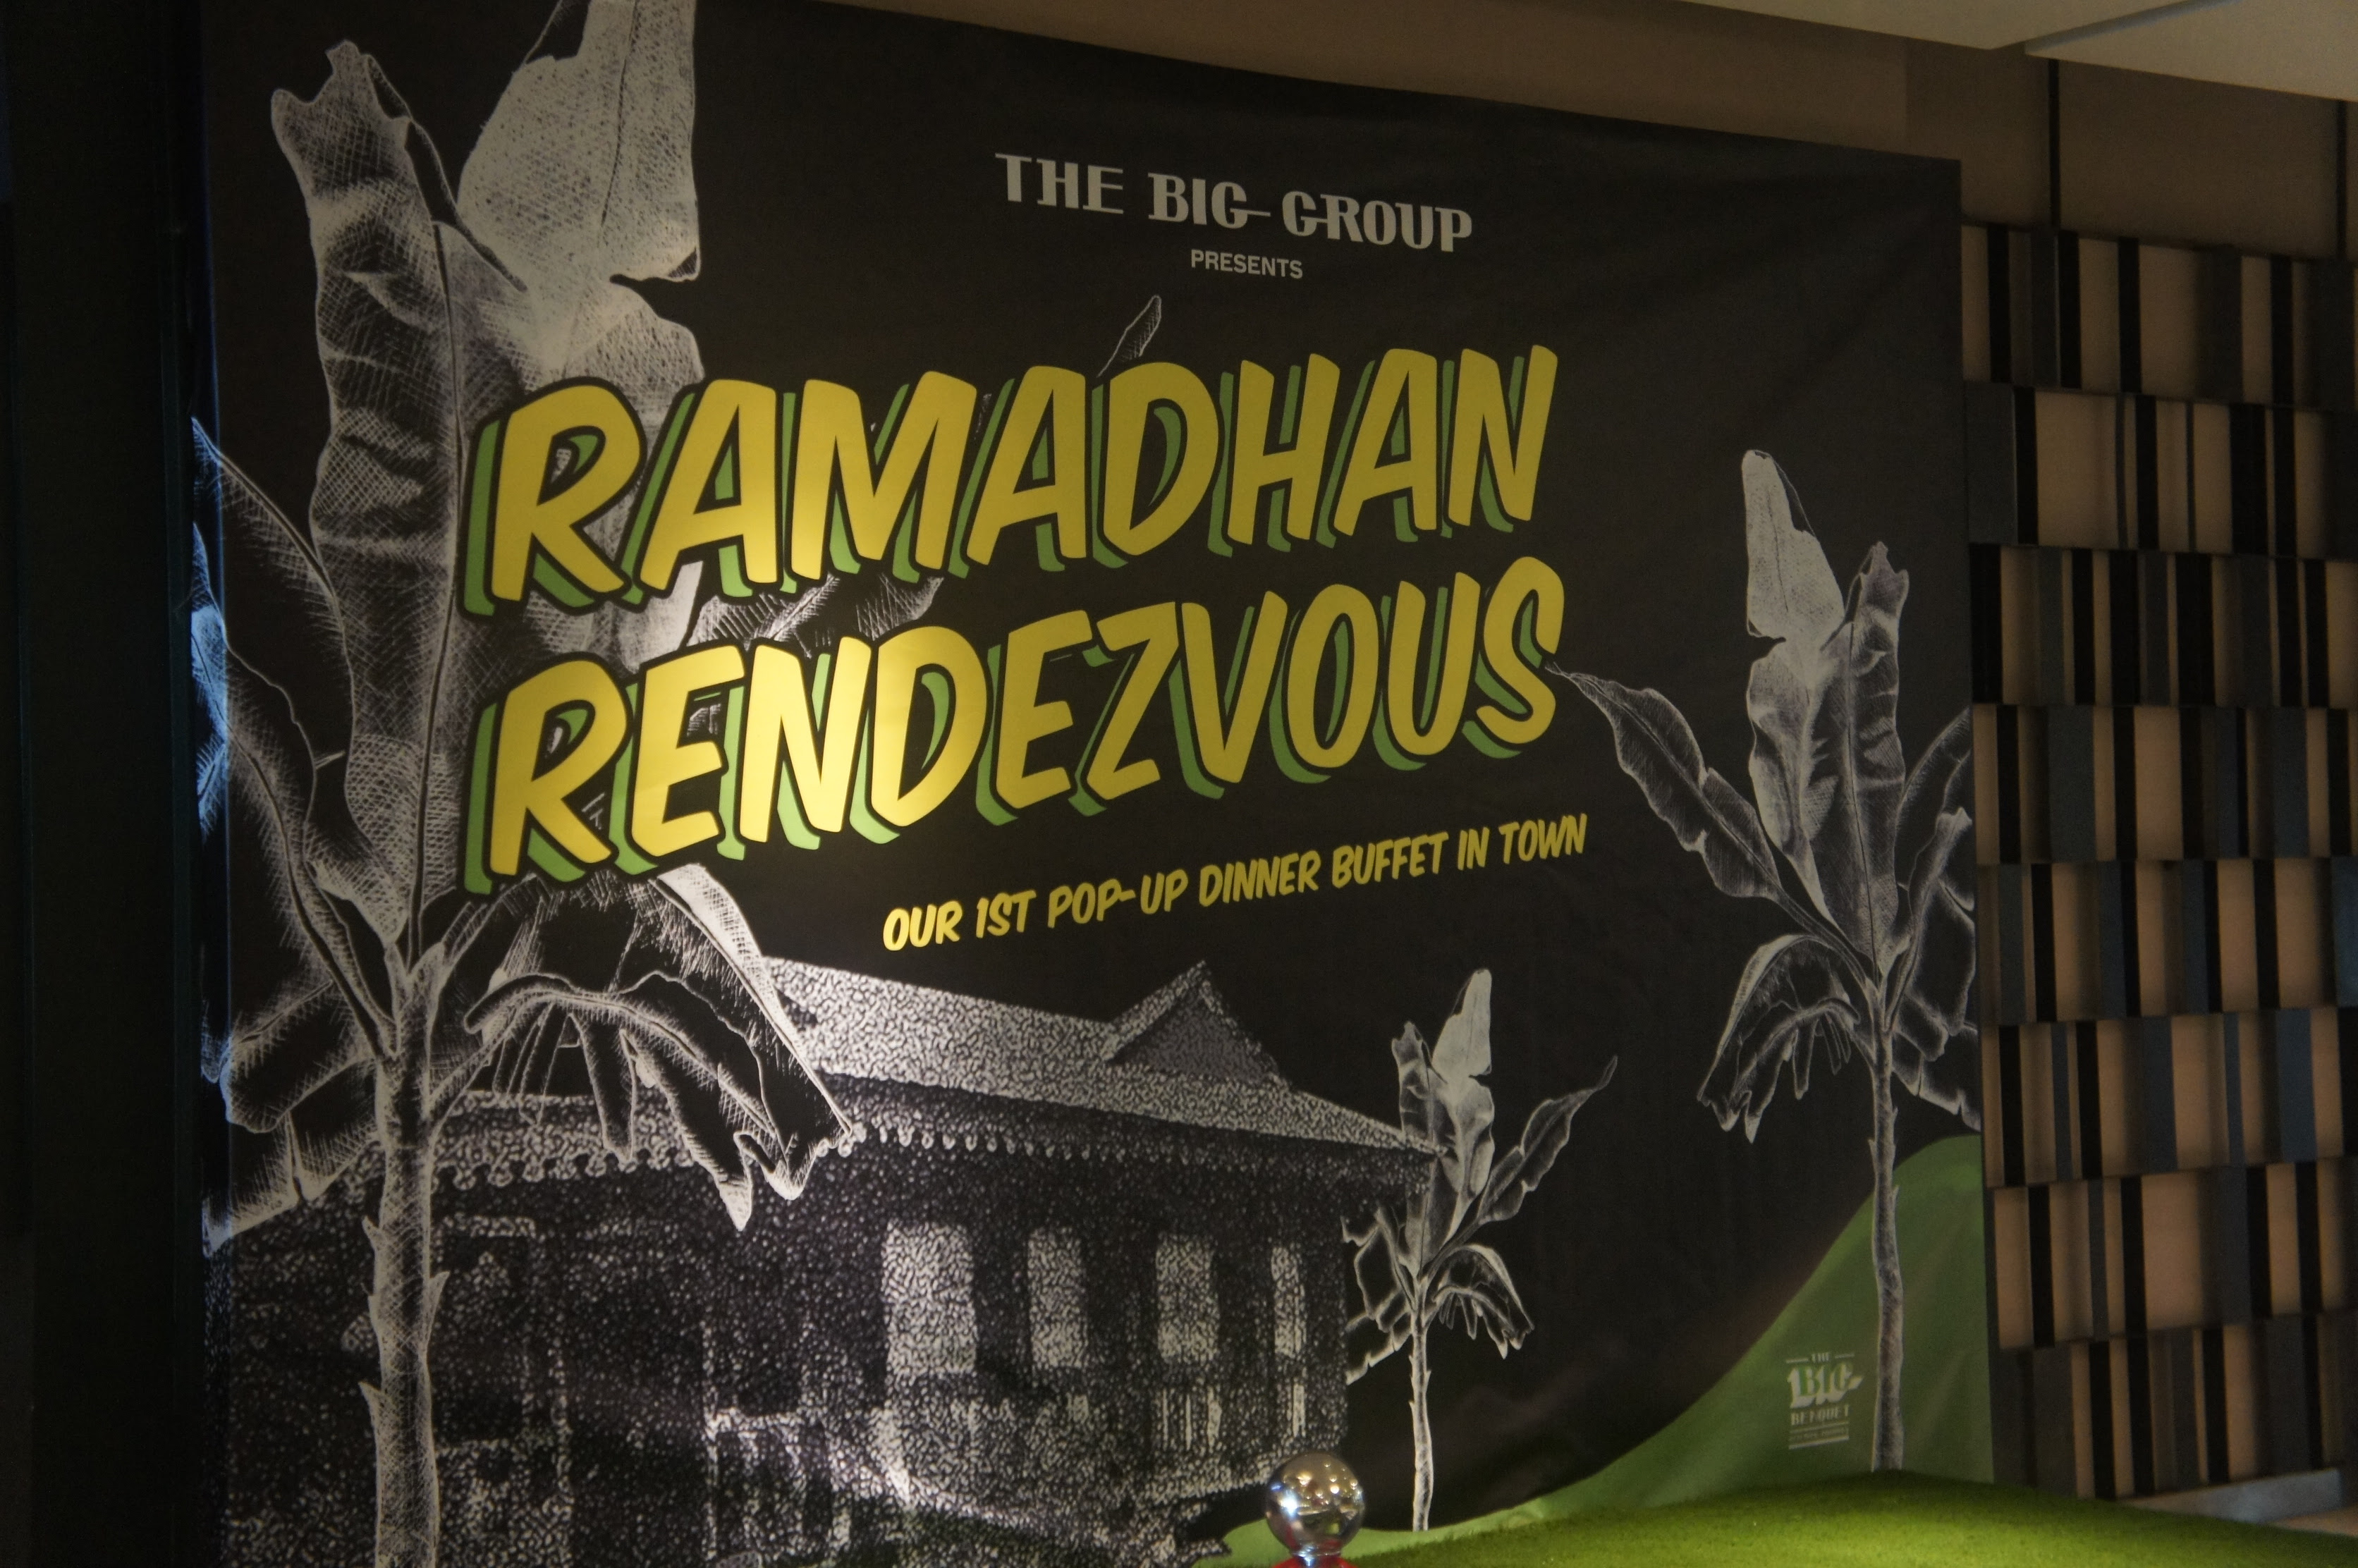 Ramadhan Rendezvous Pop-Up Buka Puasa Dinner Buffet